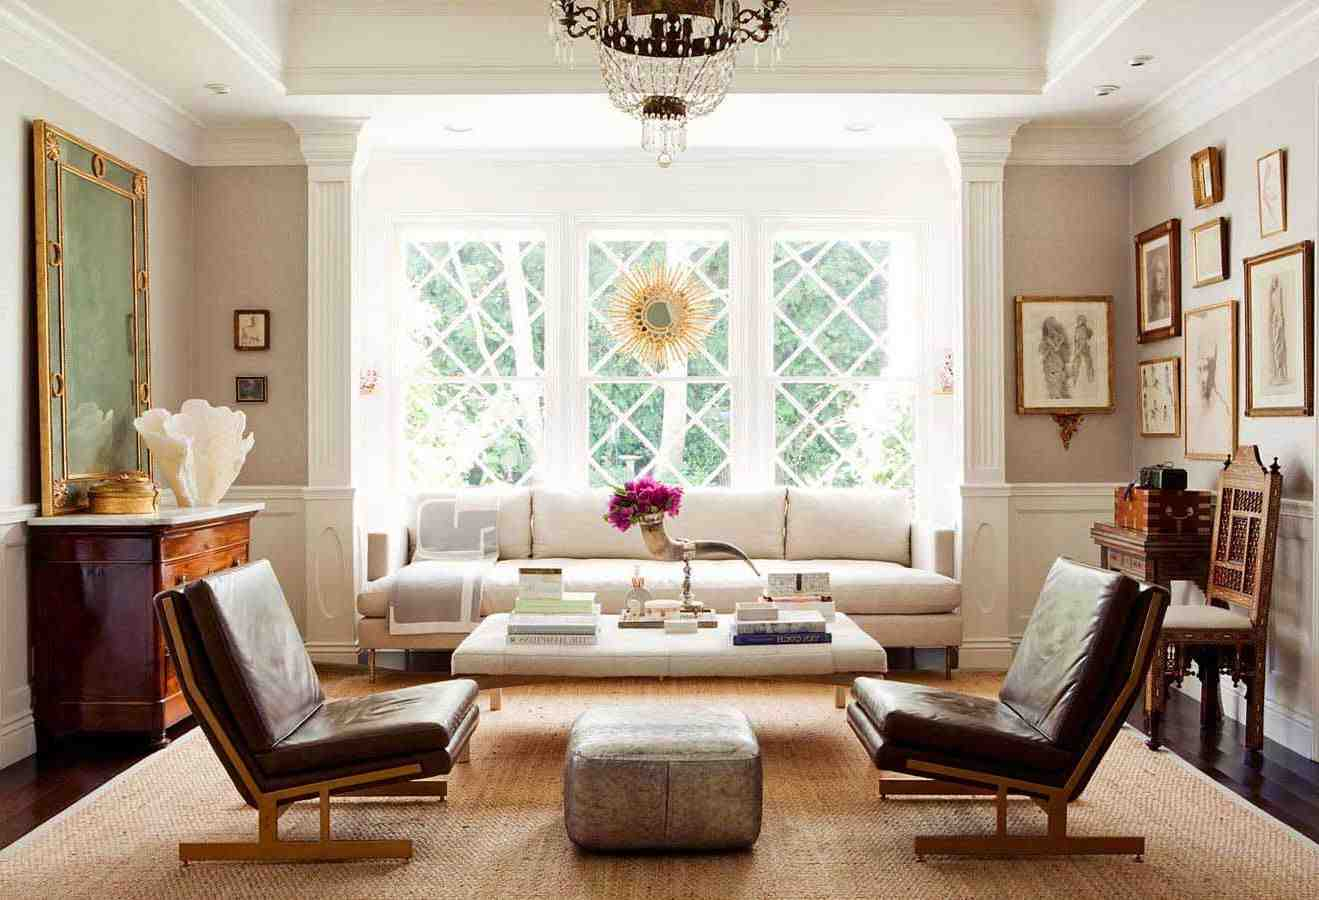 Follow these Feng Shui tips and tricks to increase the positive energy in your living room